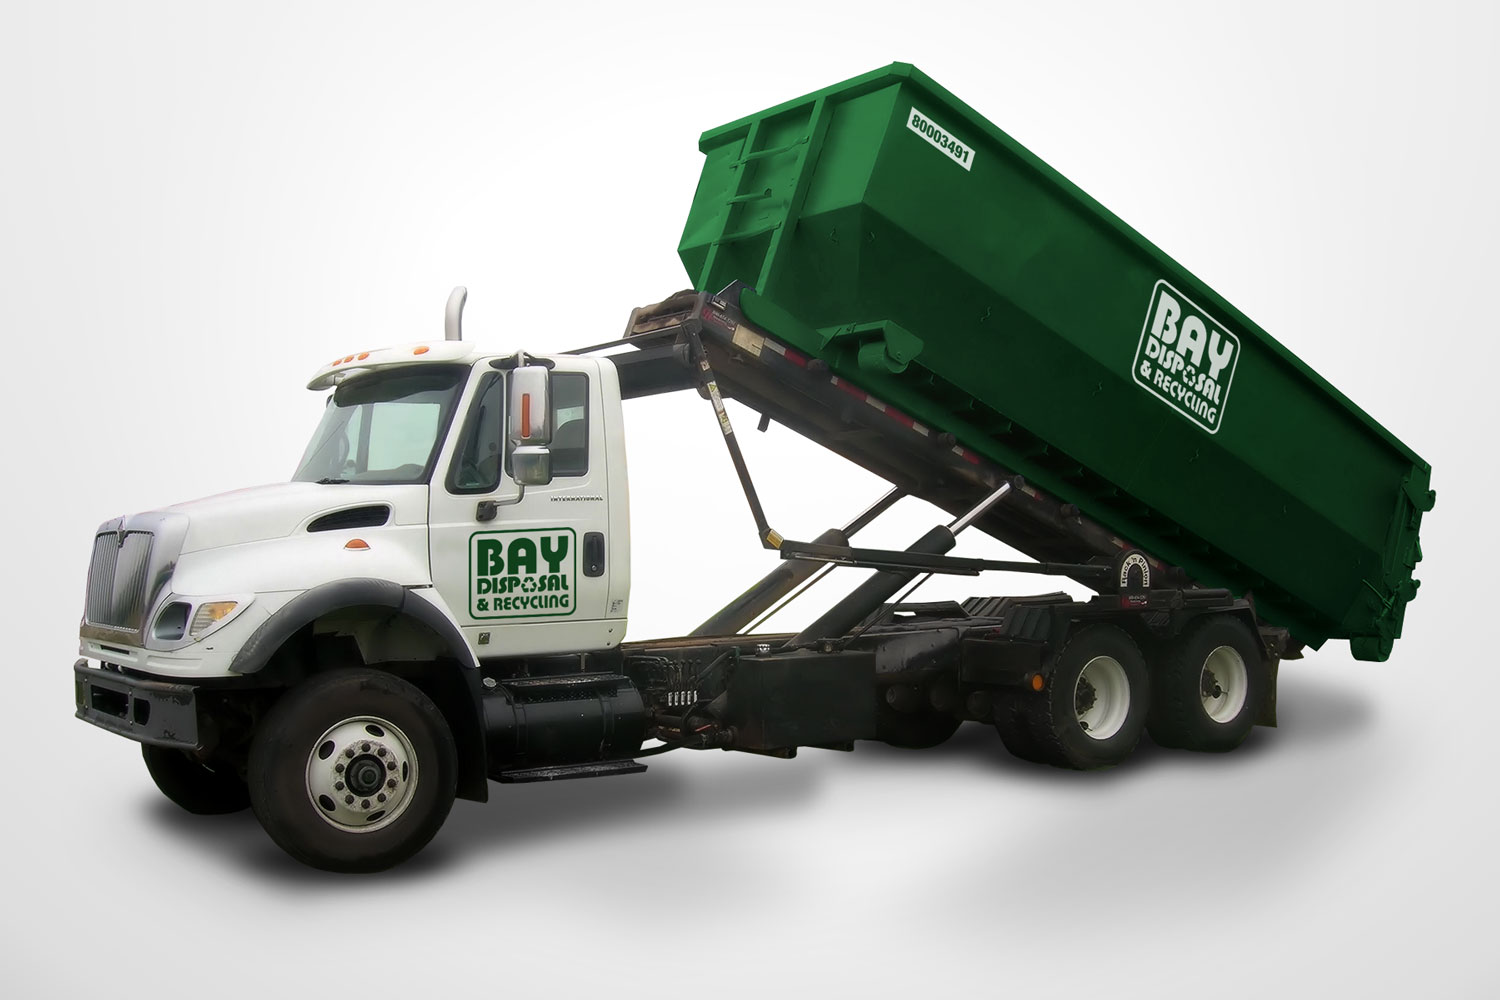 Dumpster & Vehicle Graphics